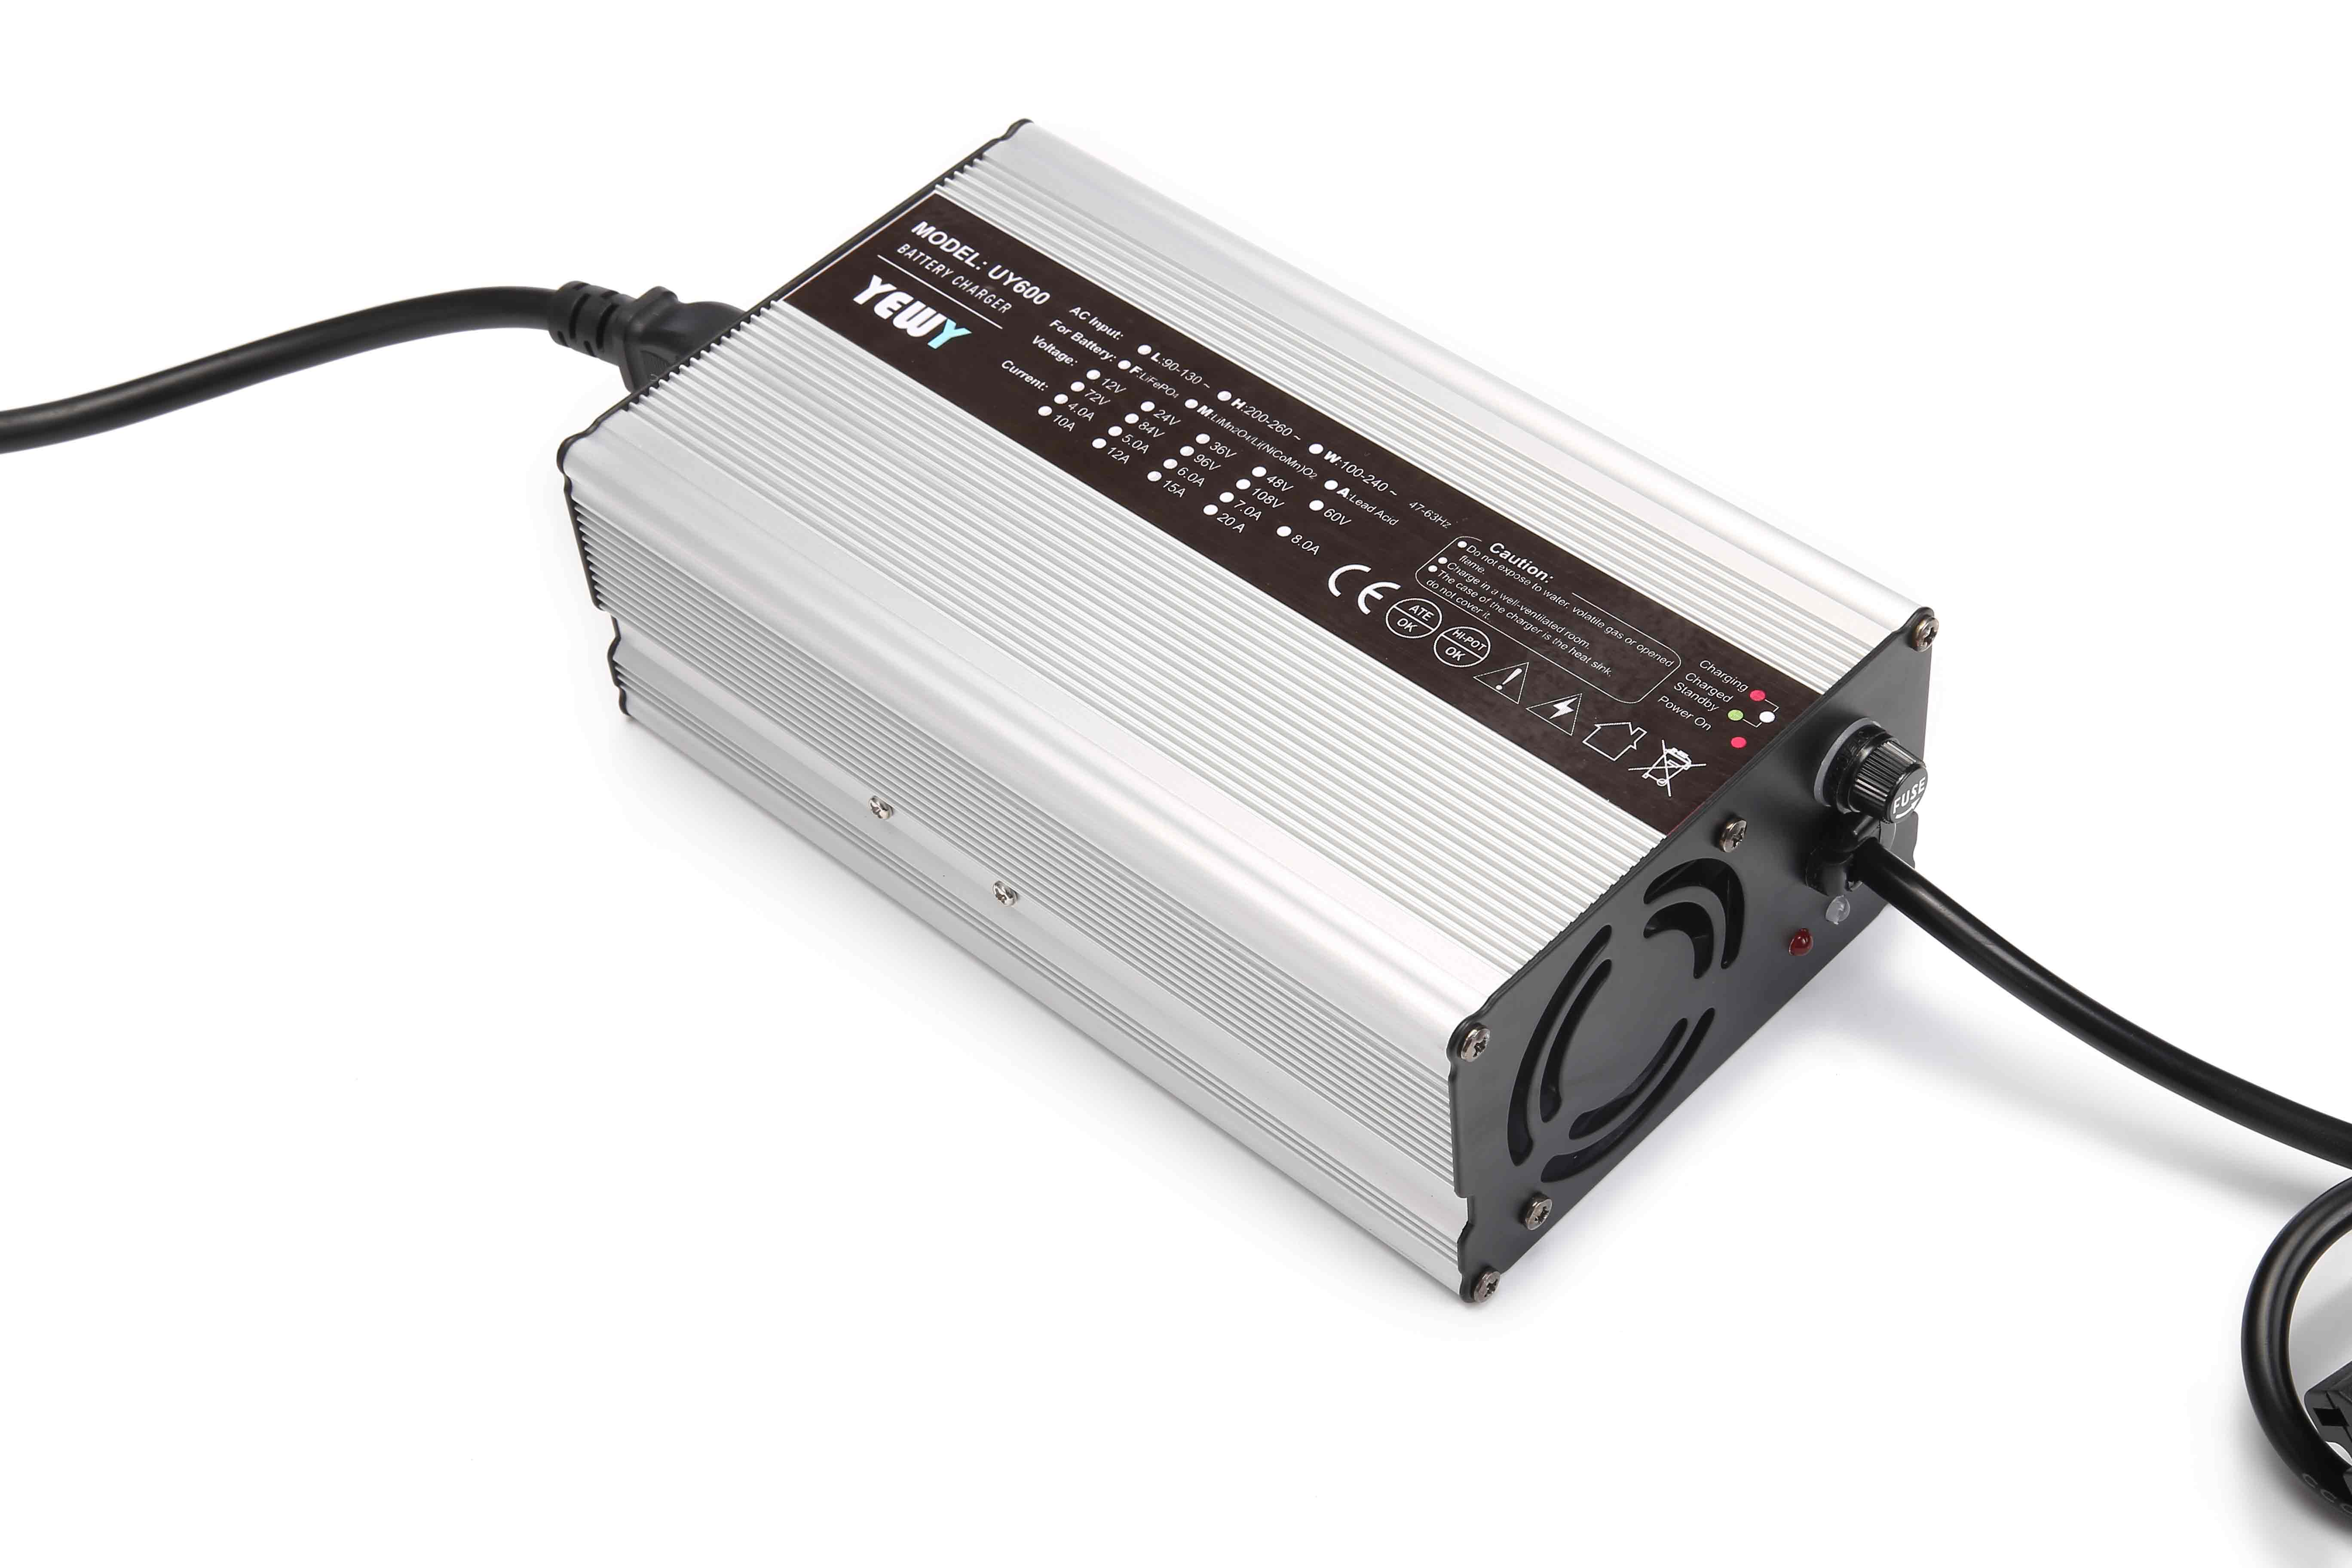 UY600 Charger (600Watts)